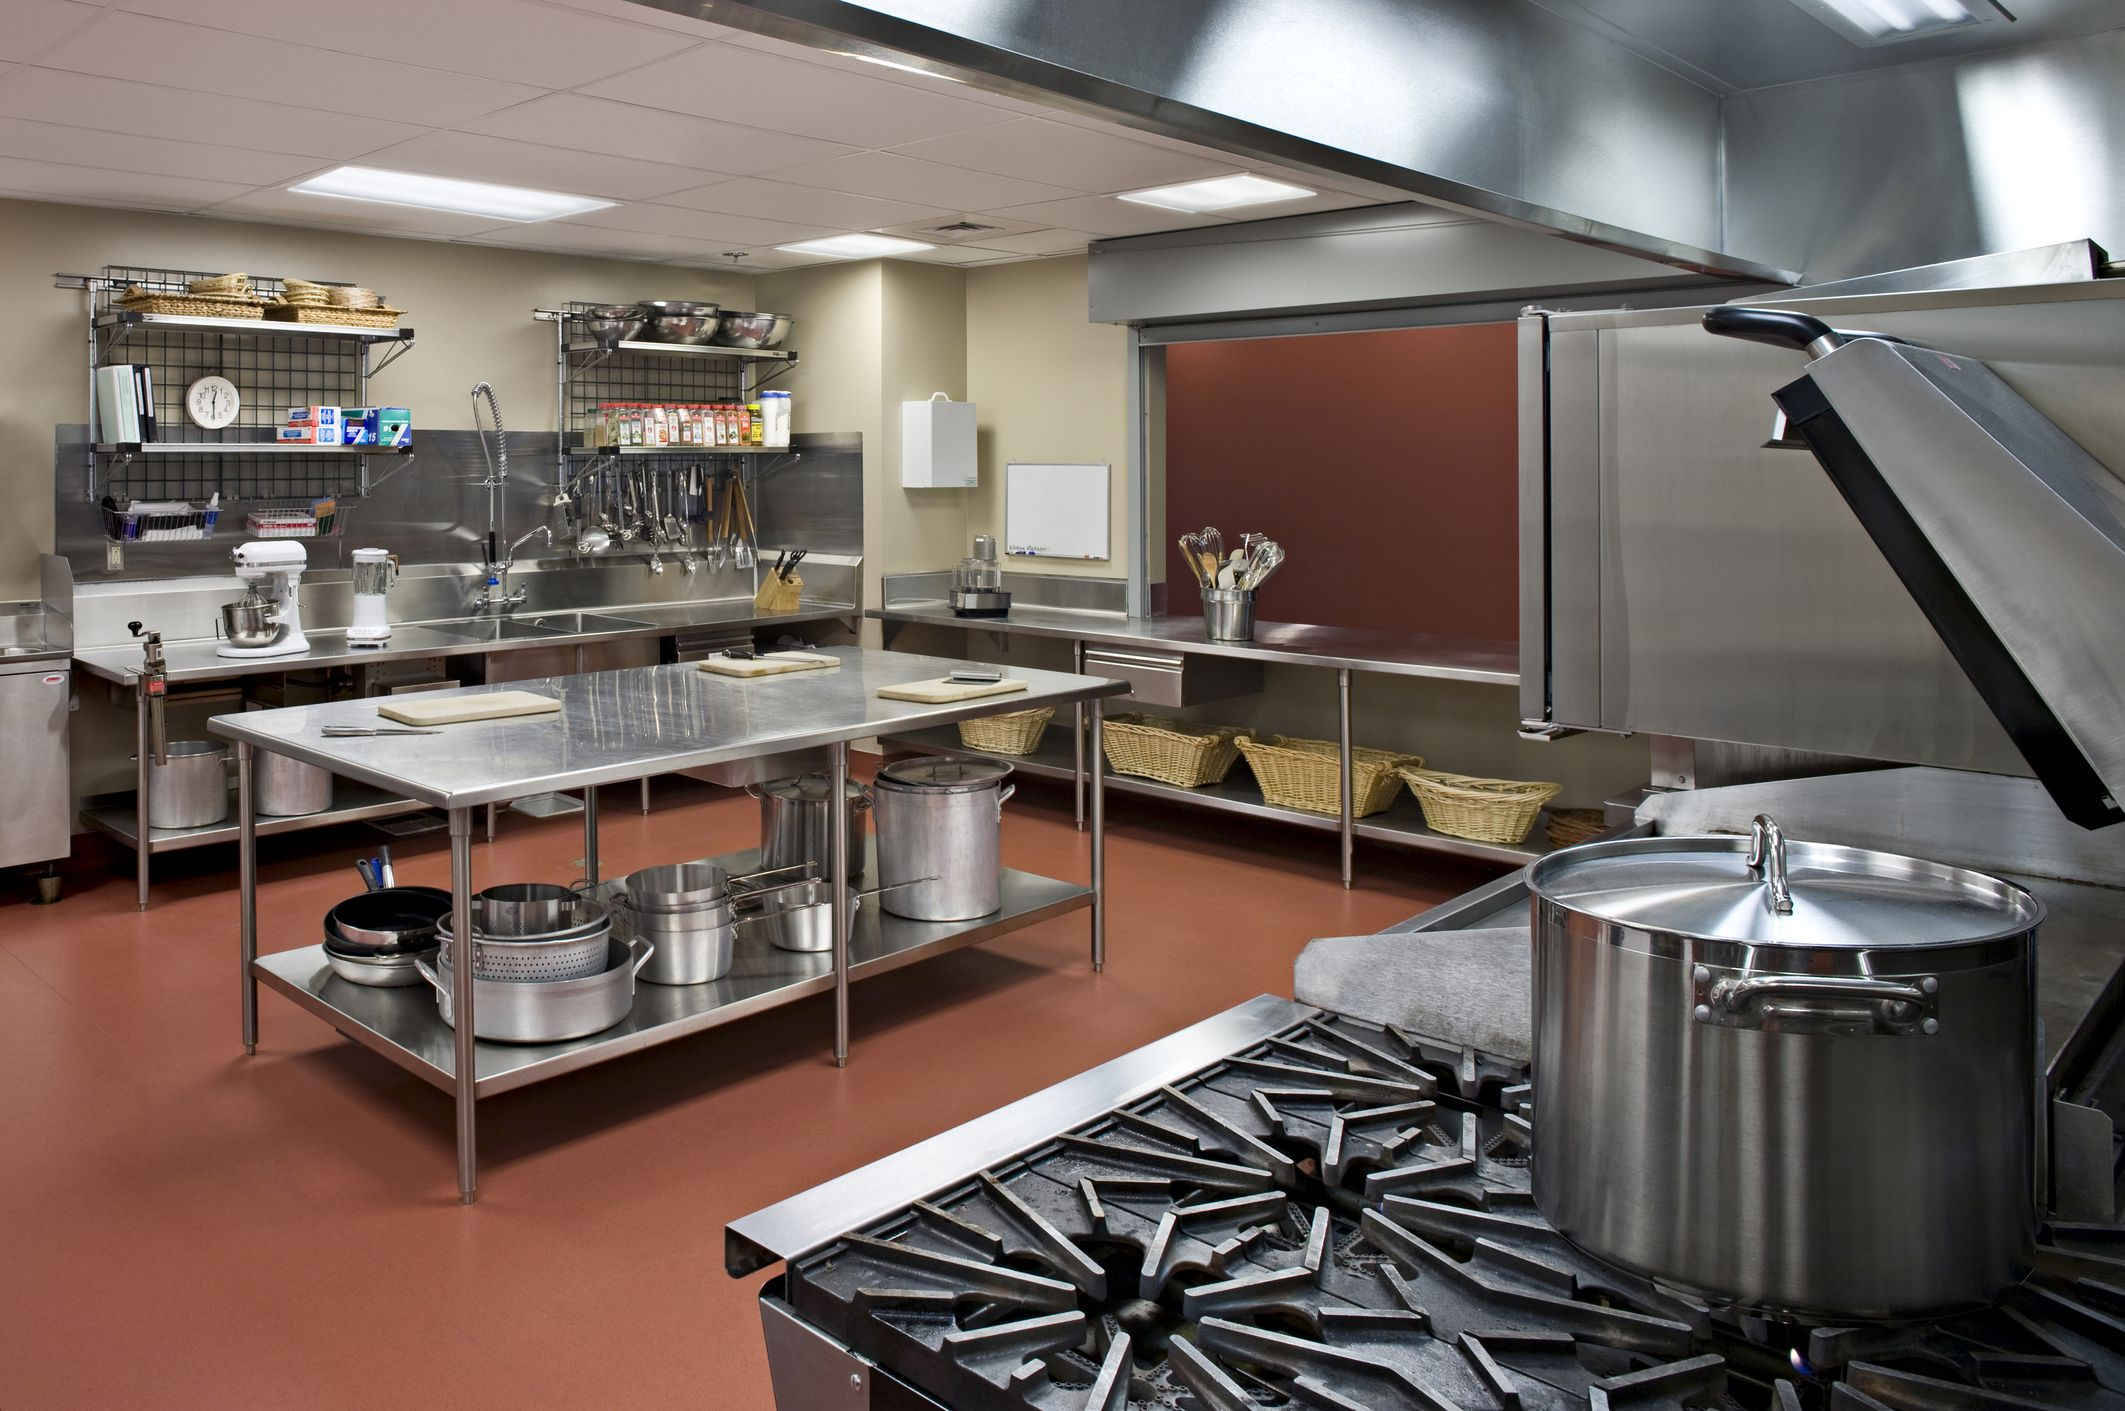 How To Clean Restaurant Kitchen Equipment